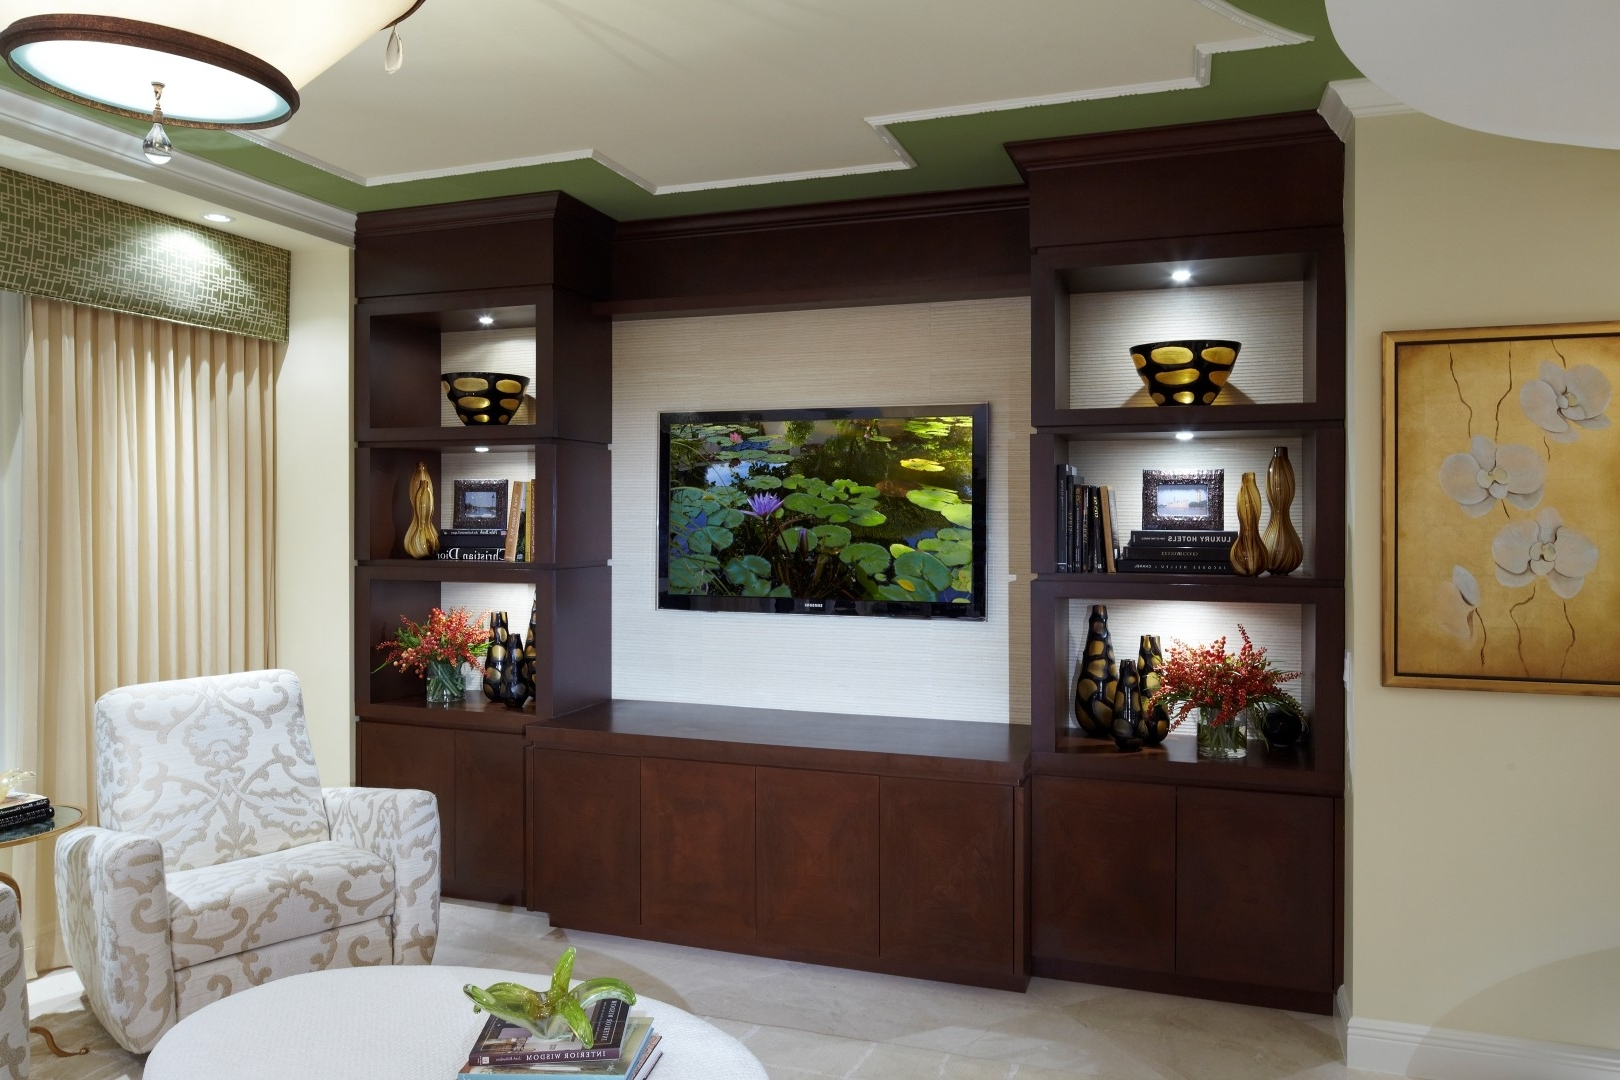 Wall Units For Living Room With Regard To Popular Living Room Wall Units – Wall Units Design Ideas : Electoral (View 11 of 15)